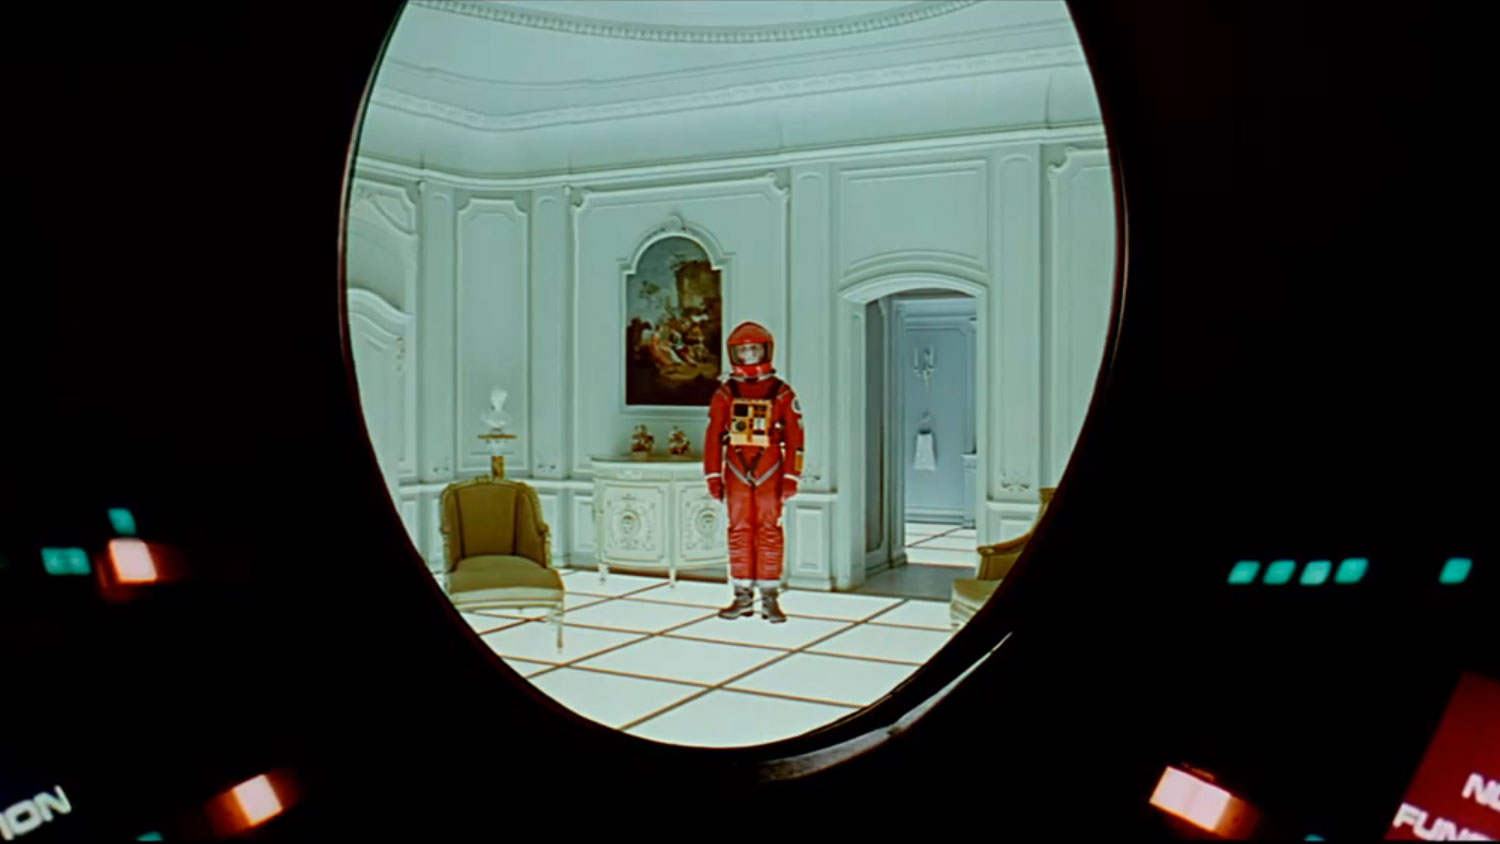 an analysis of final scene in a space odyssey made in 1968 2001: a space odyssey is an epic science fiction film (1968) 1, 2, 3 directed by stanley kubrick and based on arthur c clarke's short story, the sentinel (1948) 4 in clarke's tale, a crystal pyramid placed on the moon long ago by an advanced extraterrestrial race serves to notify its creators when it is finally disturbed by explorers from.